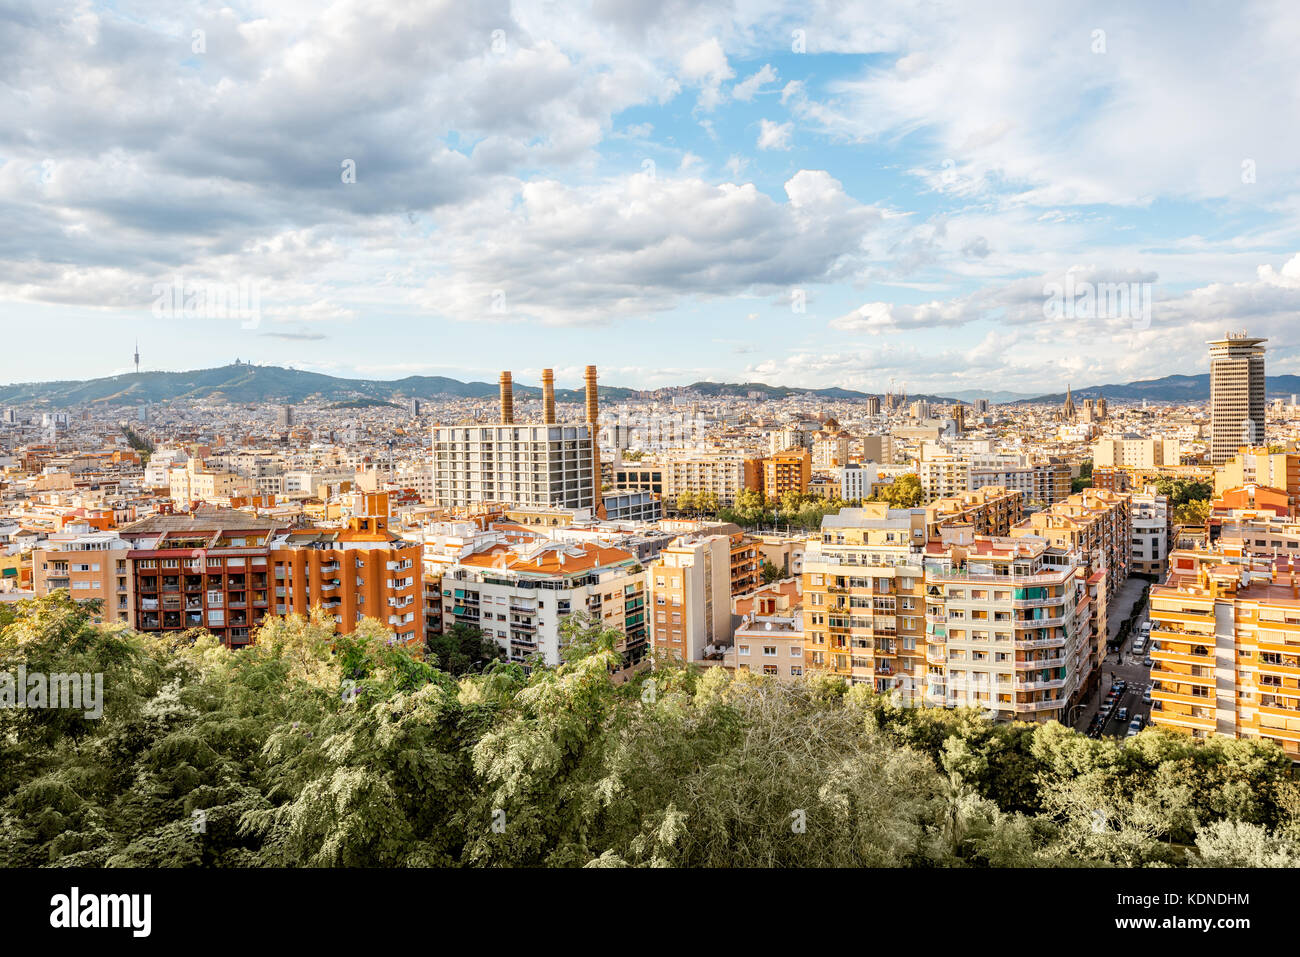 Barcelona city view - Stock Image